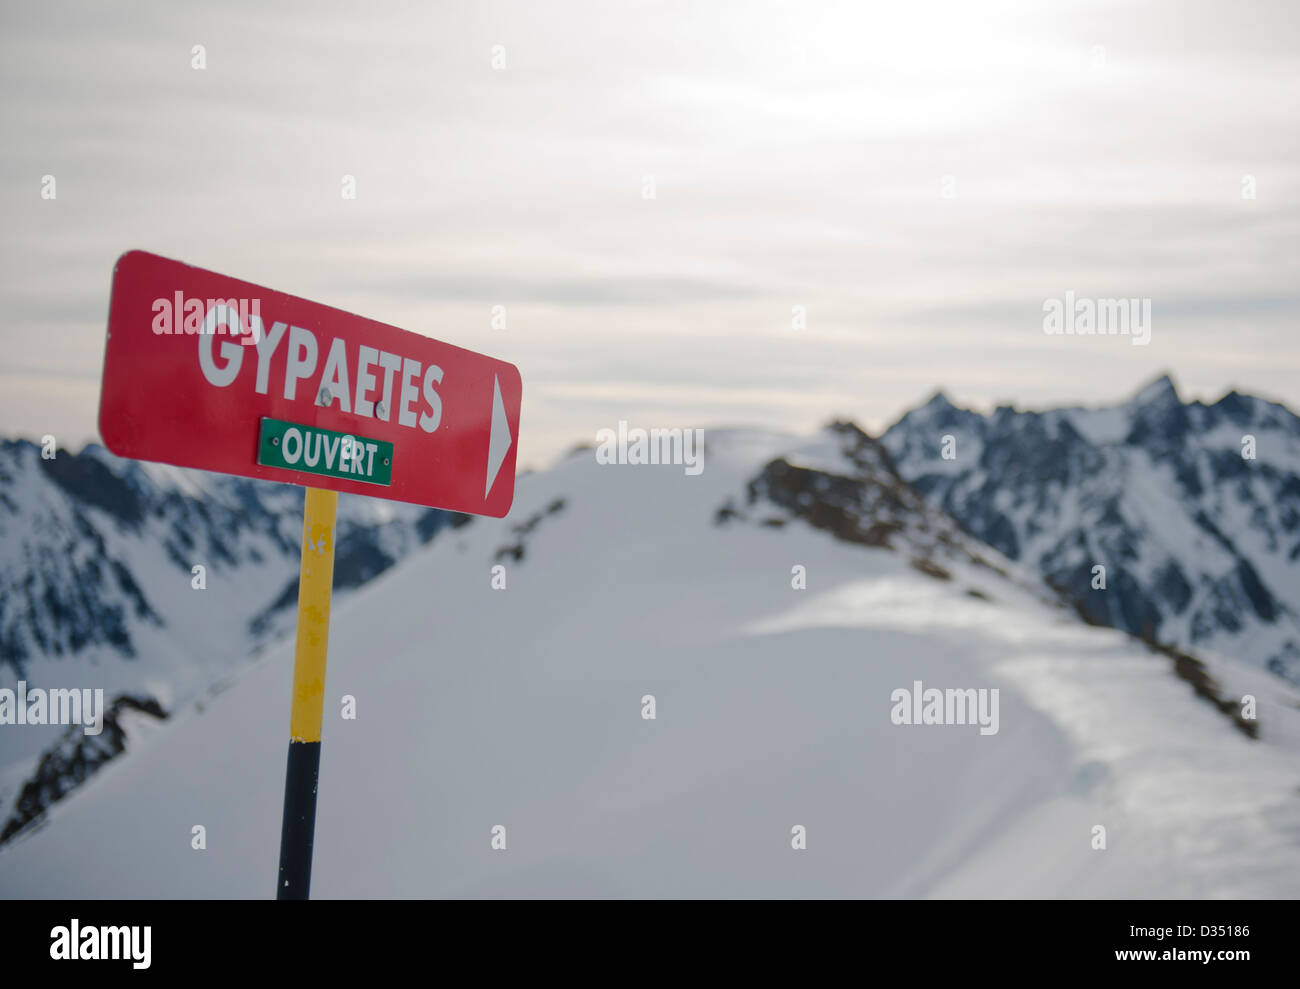 Marker for a red slope at La Mongie, skiing resort of the Grand Tourmalet area in the high Pyrenees, France Stock Photo